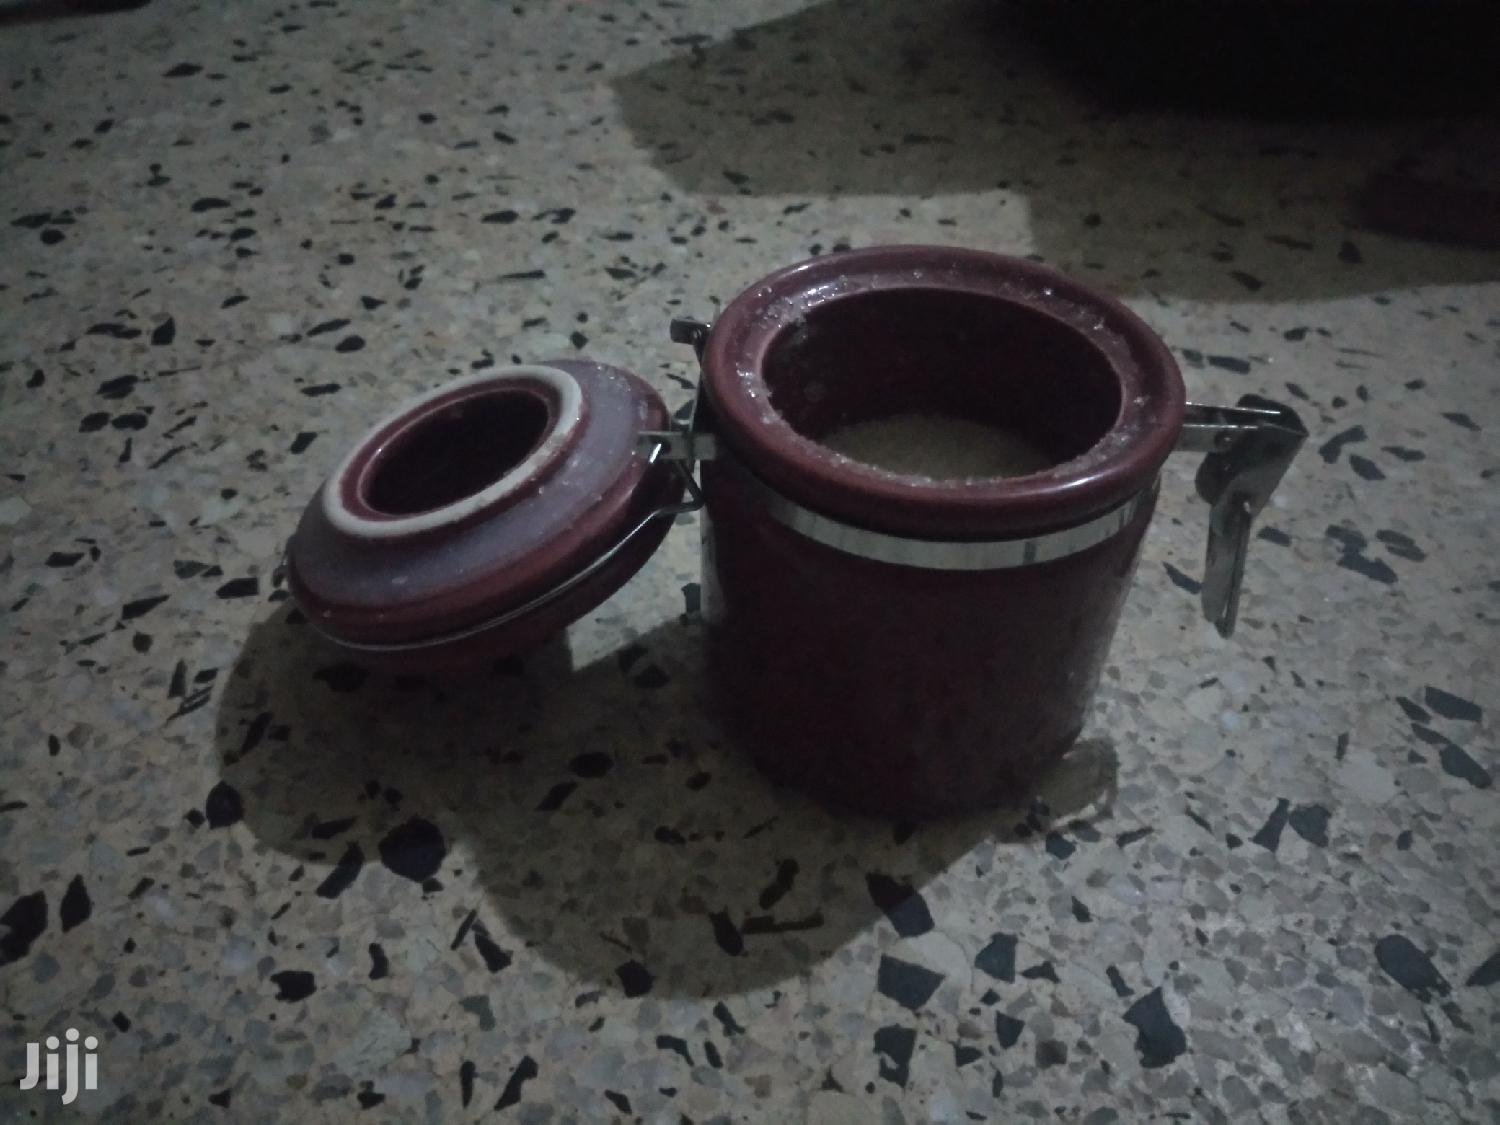 Pair Of Bowls | Kitchen & Dining for sale in Kampala, Central Region, Uganda